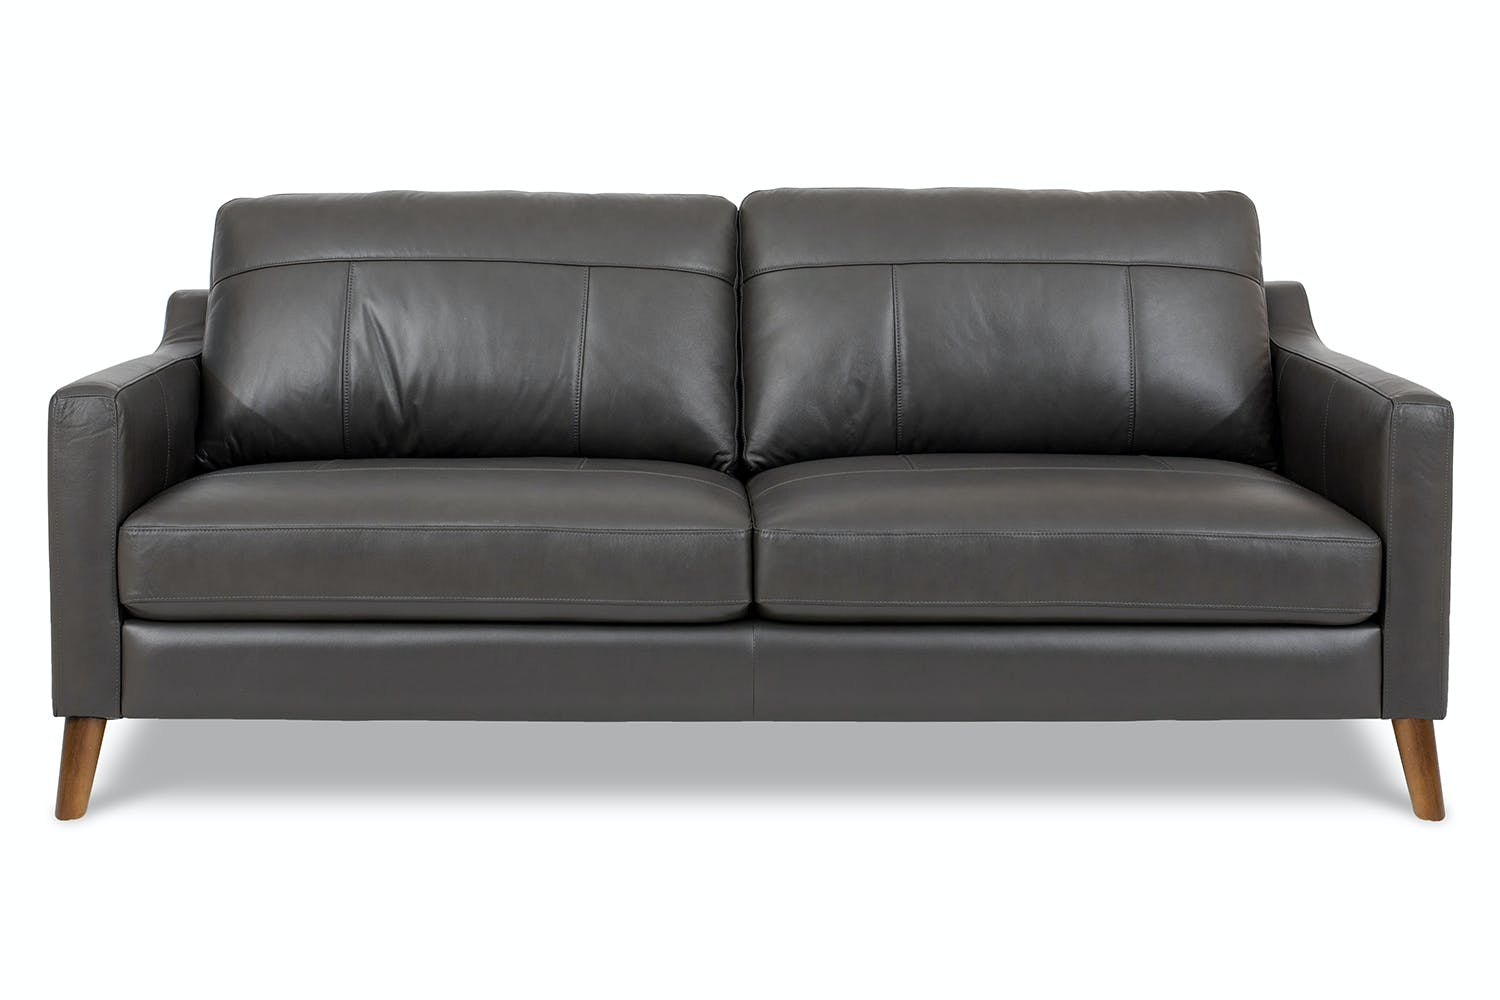 Marvelous Leather Sofas Harvey Norman Ireland Caraccident5 Cool Chair Designs And Ideas Caraccident5Info